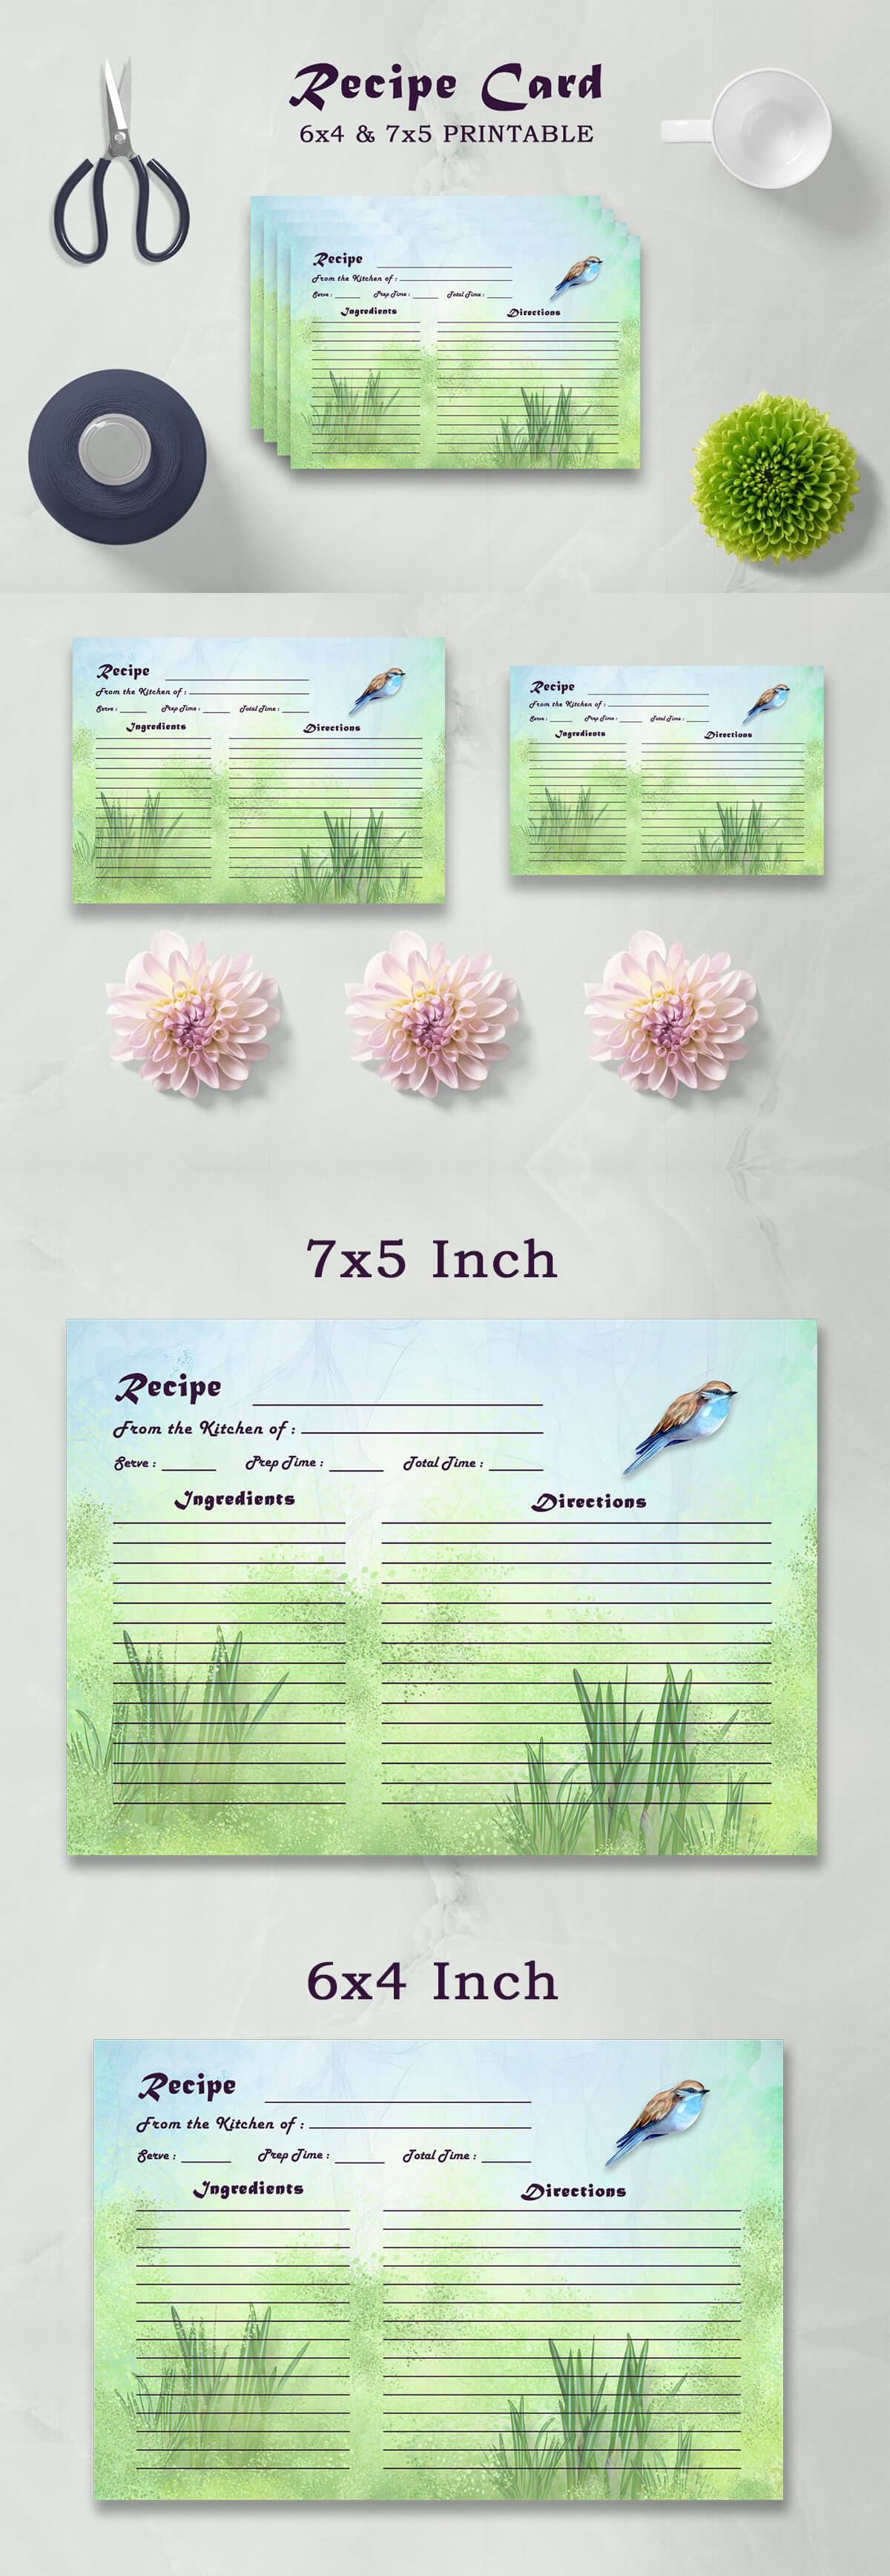 Free Sparrow Recipe Card Template